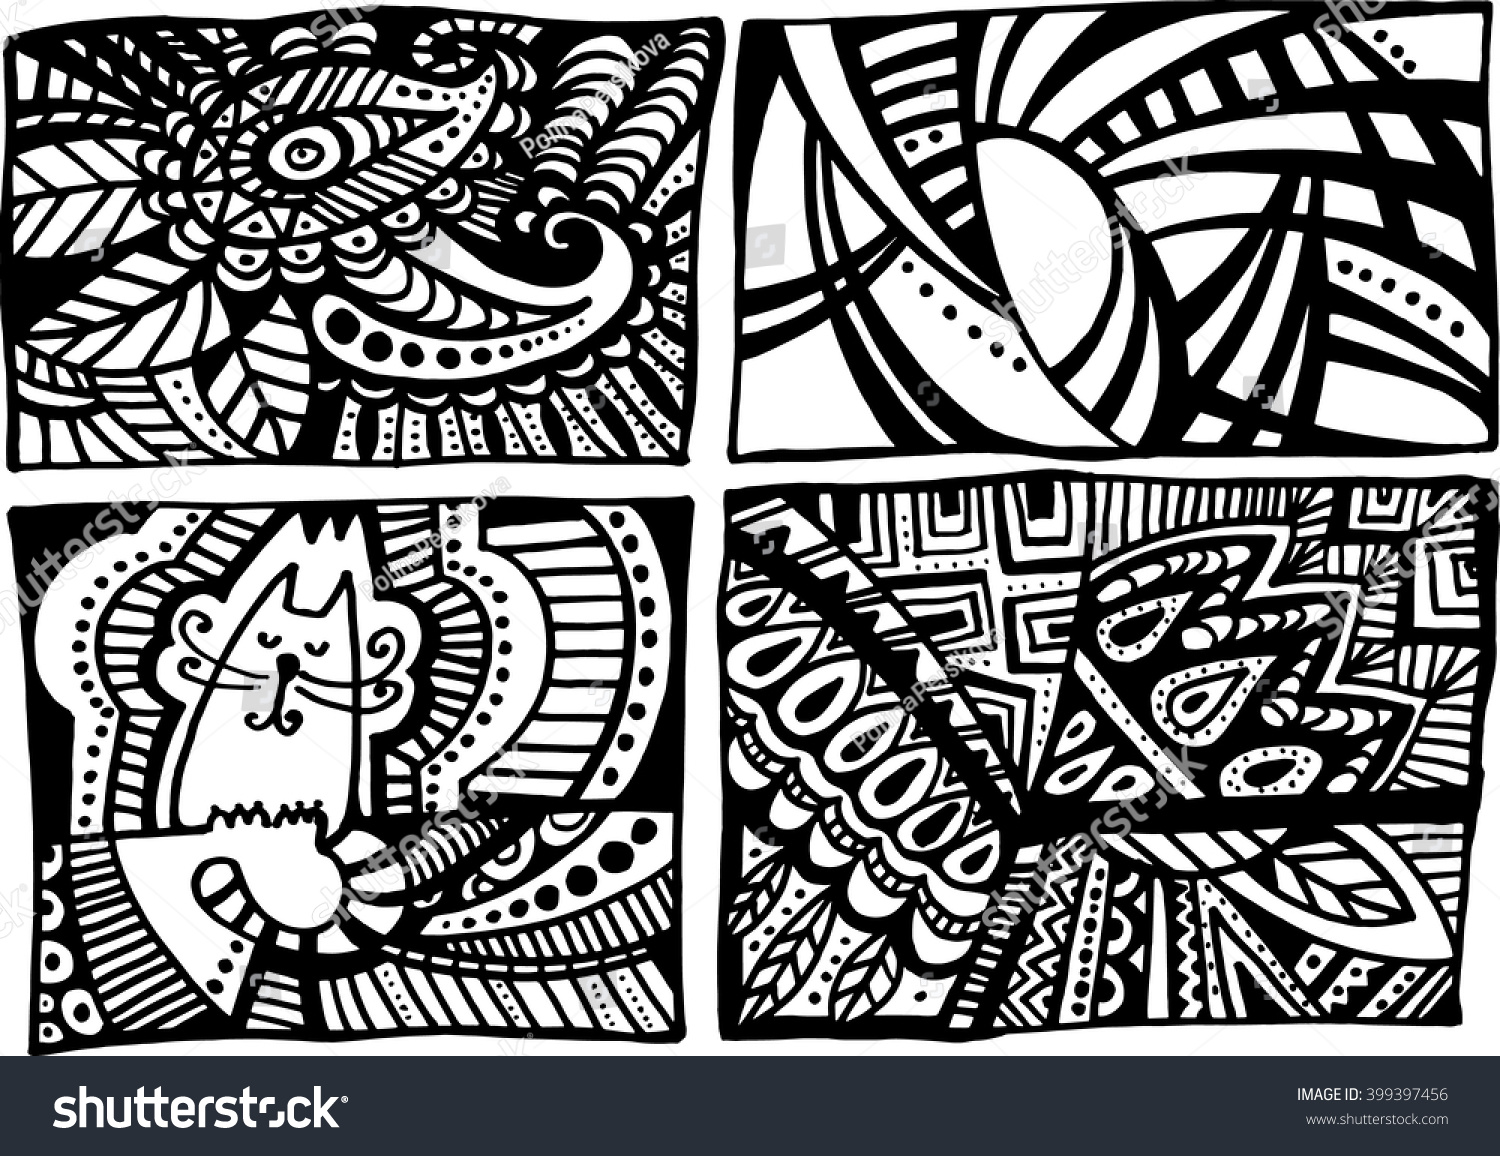 Line And Shape Art : Line art ornament band geometric patterns stock vector